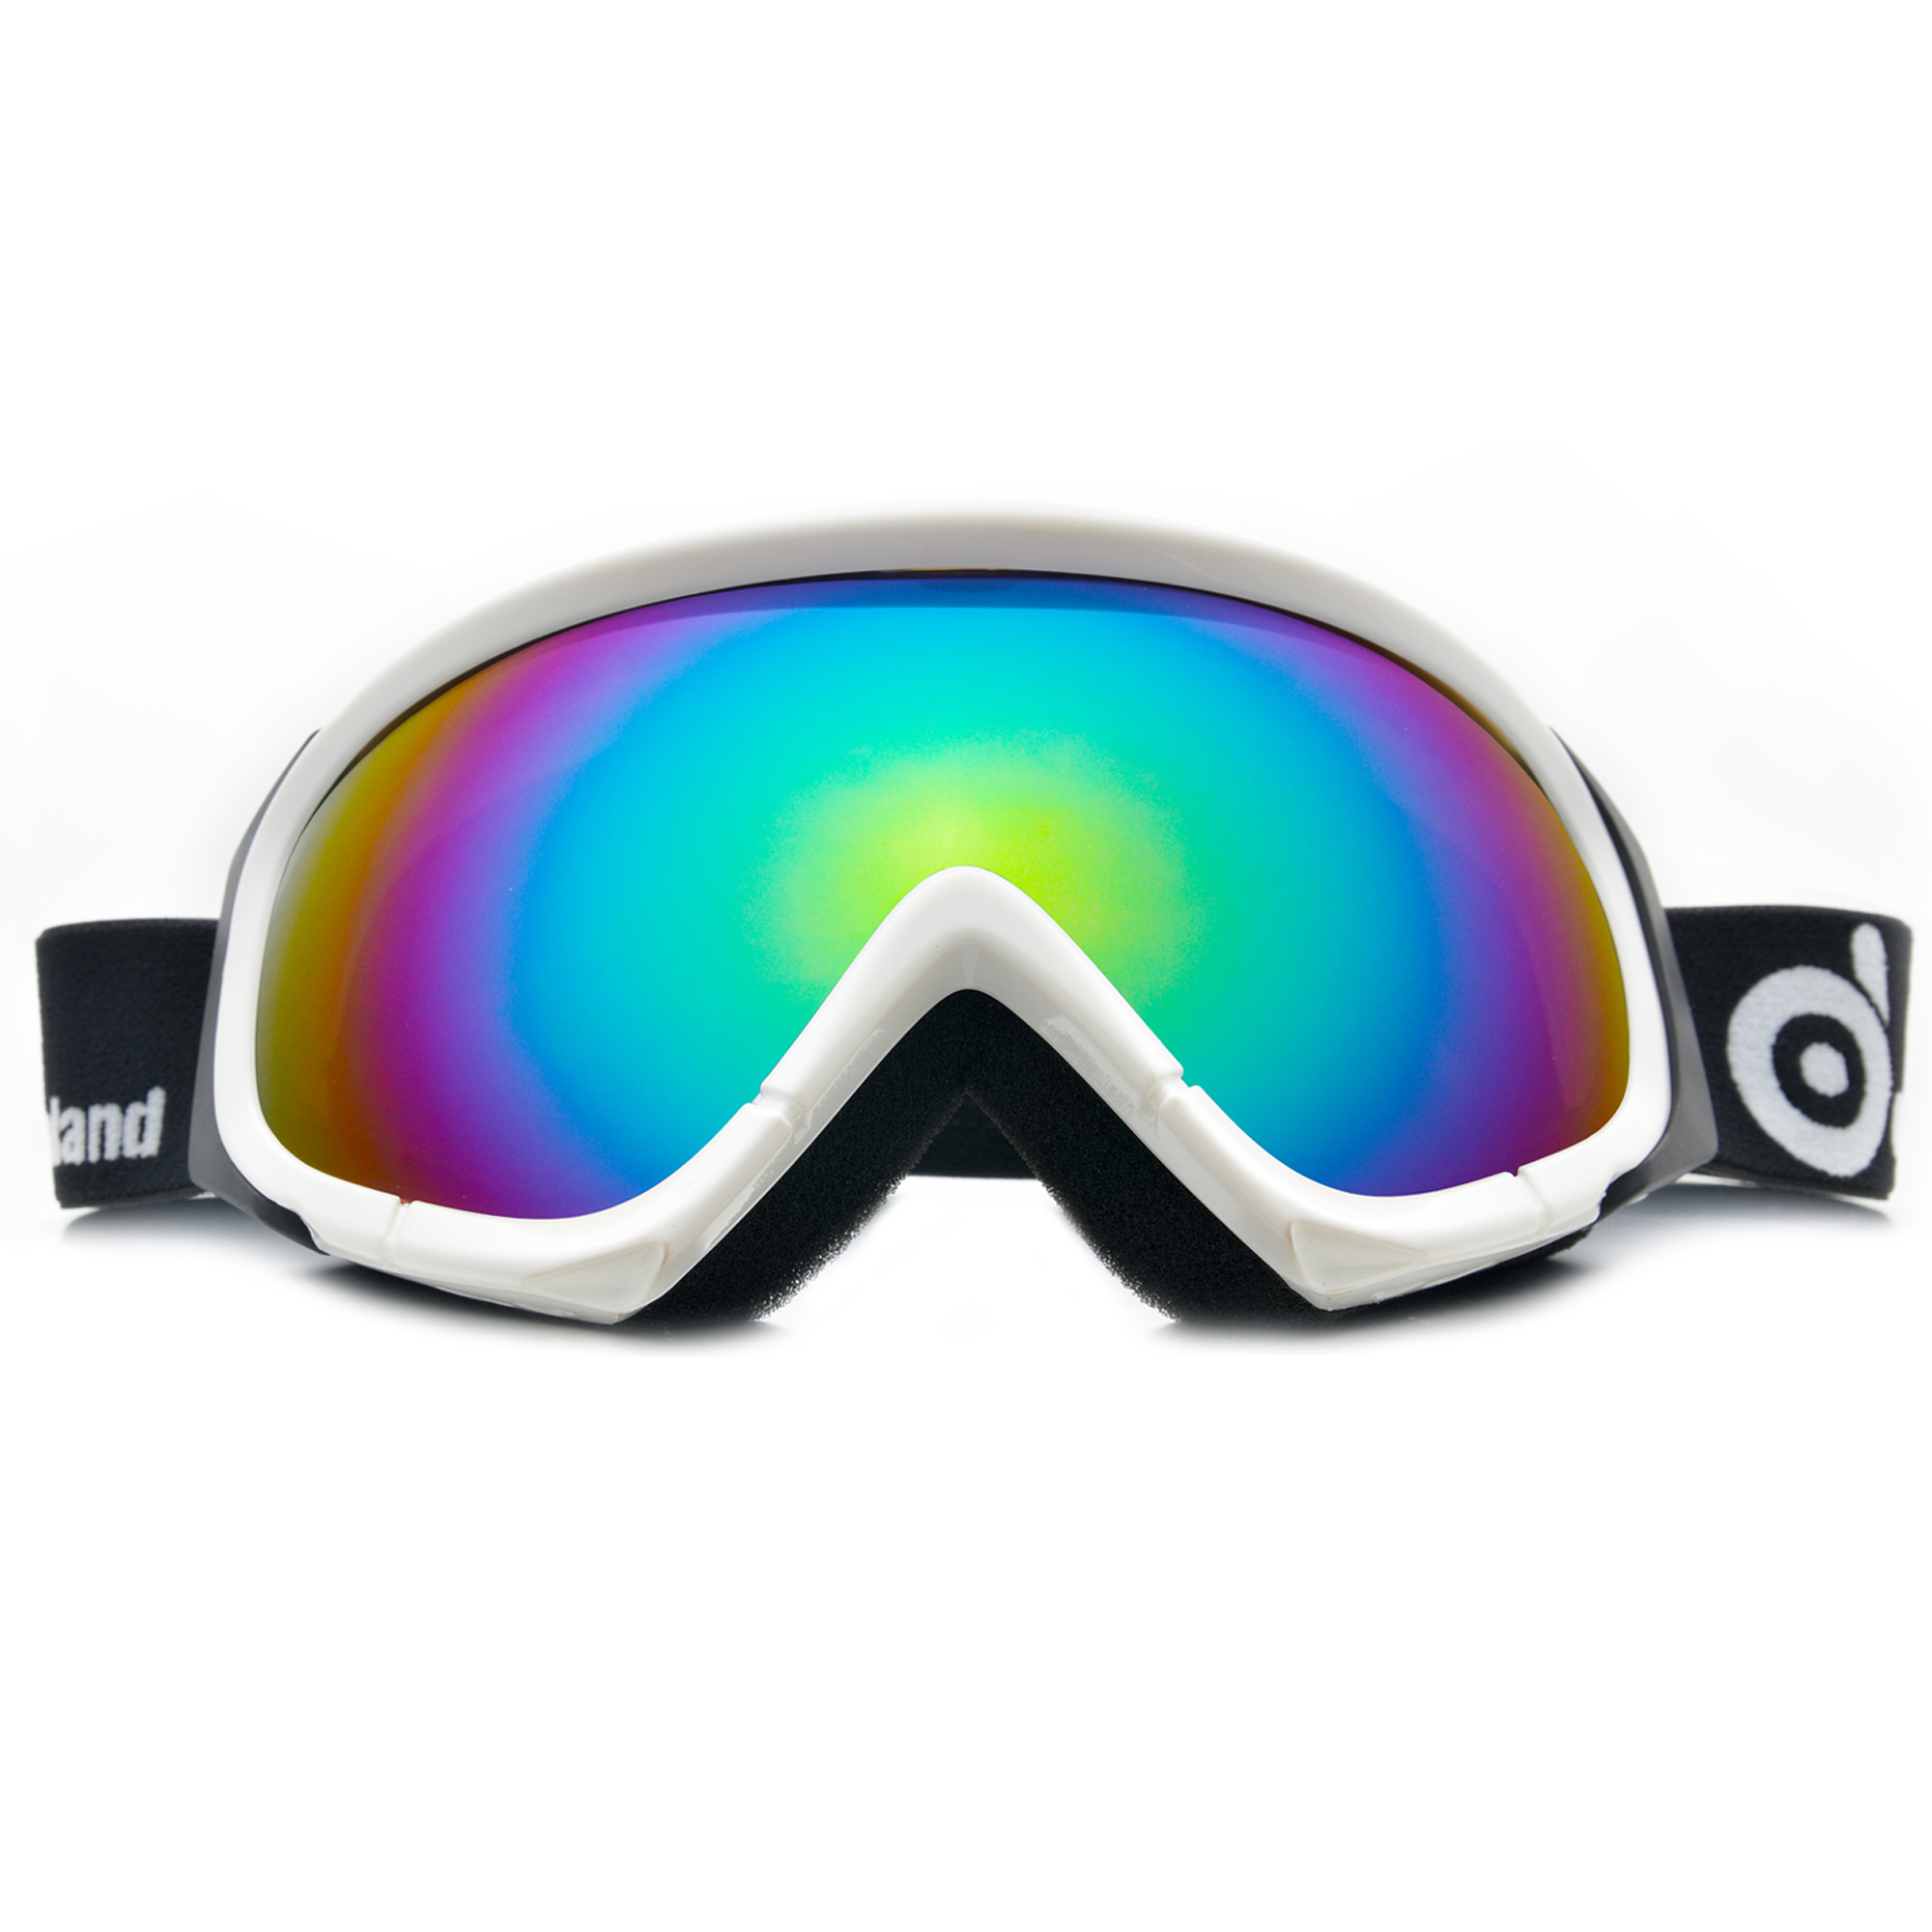 ODOLAND Ski Goggles for Adult Man & Woman UV400 Protection Anti-Fog Double Grey Spherical Lens by